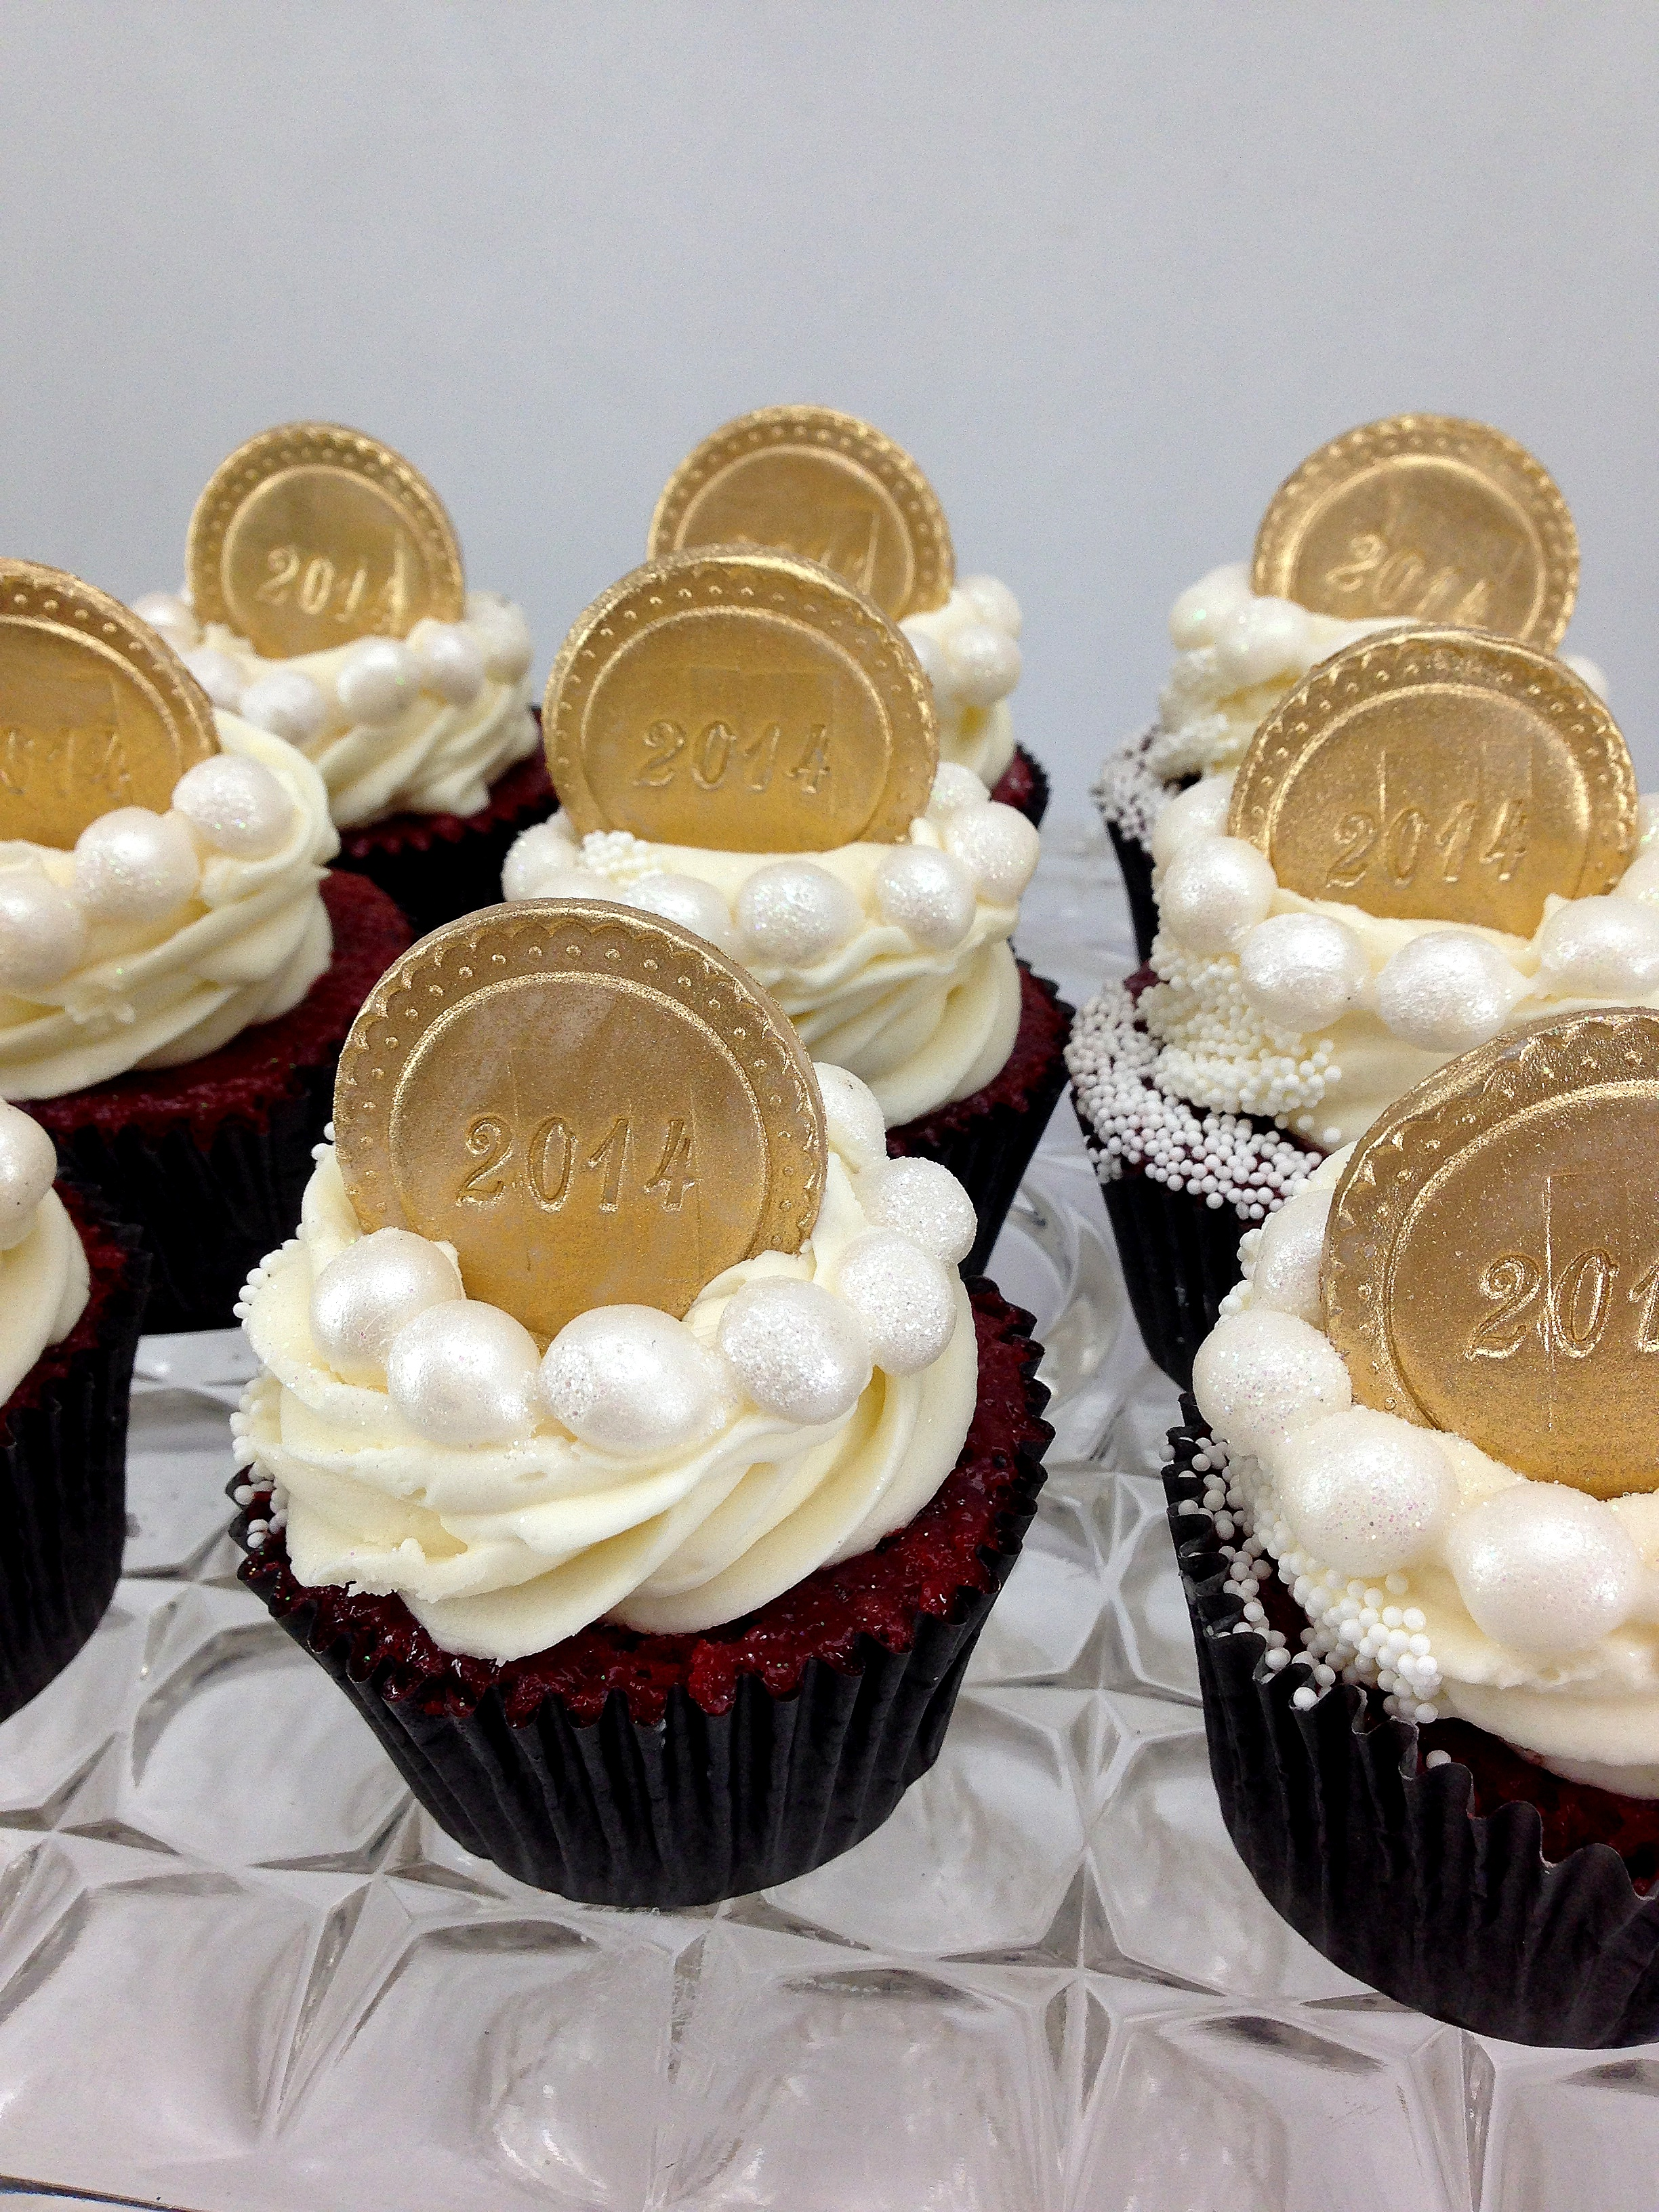 Red Velvet graduation cupcakes pearls and coin.jpg